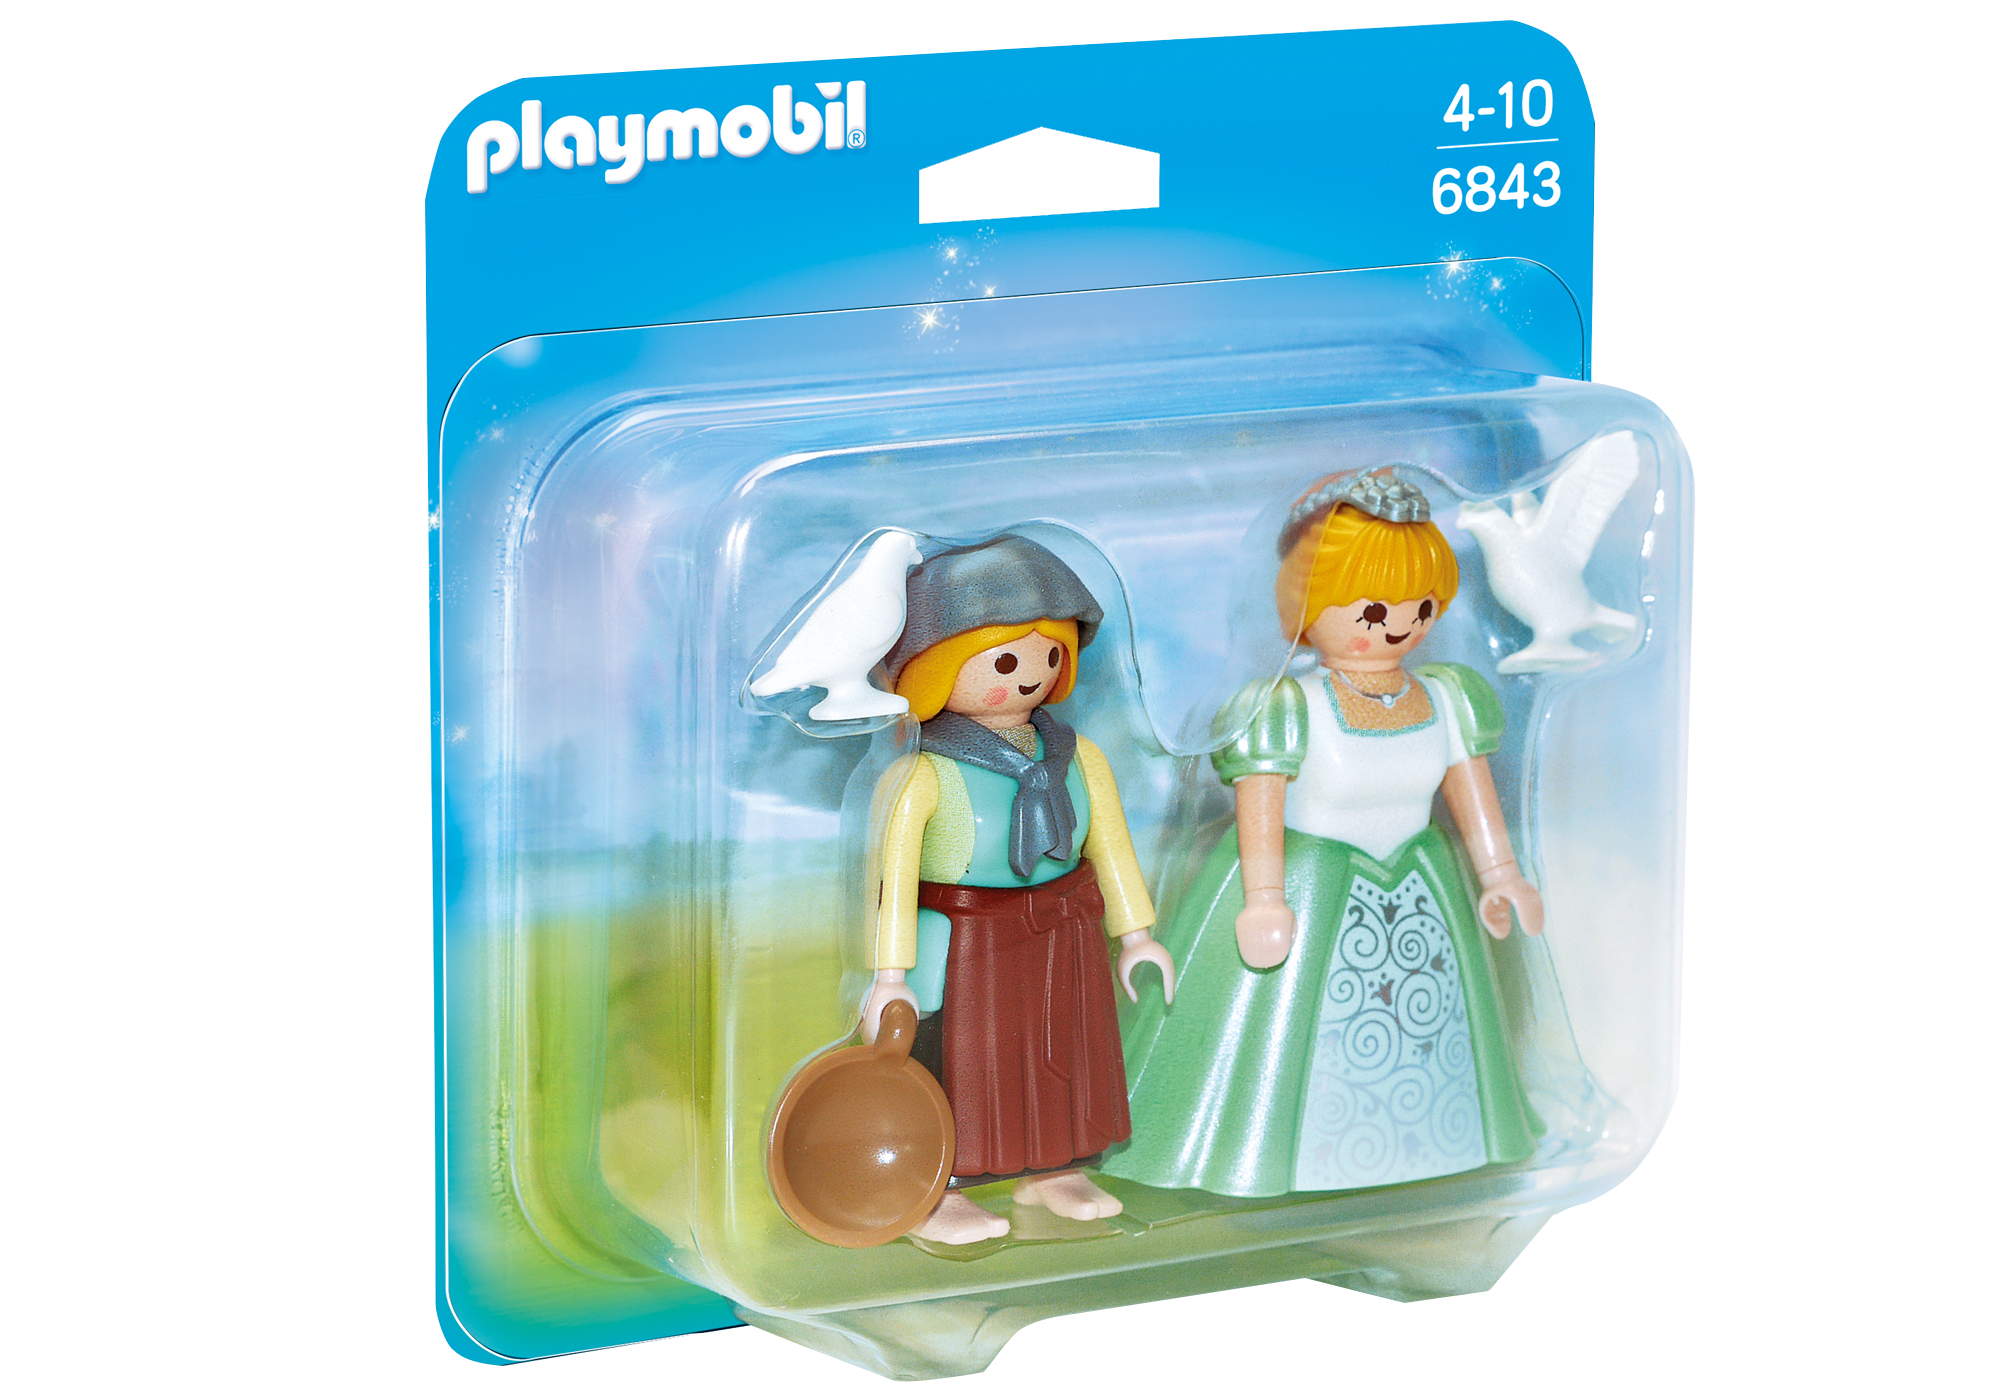 http://media.playmobil.com/i/playmobil/6843_product_box_front